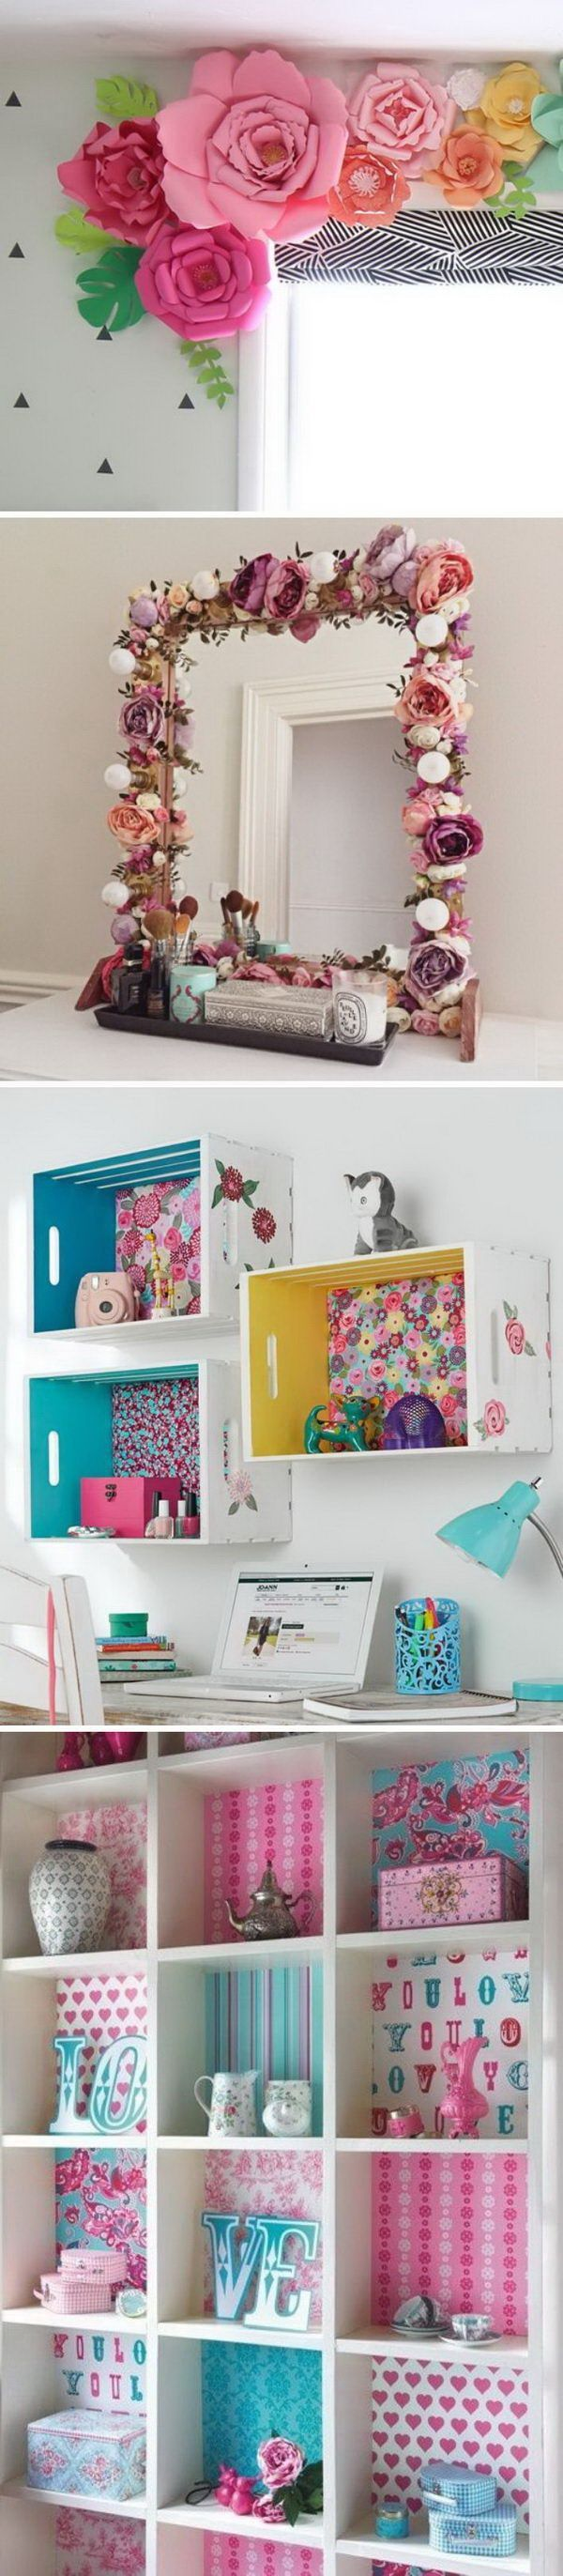 20 Awesome Diy Projects To Decorate A Girls Bedroom 2019 20 Awesome Diy Projects To Decorate A Girls Be Bedroom Diy Room Diy Apartment Decorating For Couples